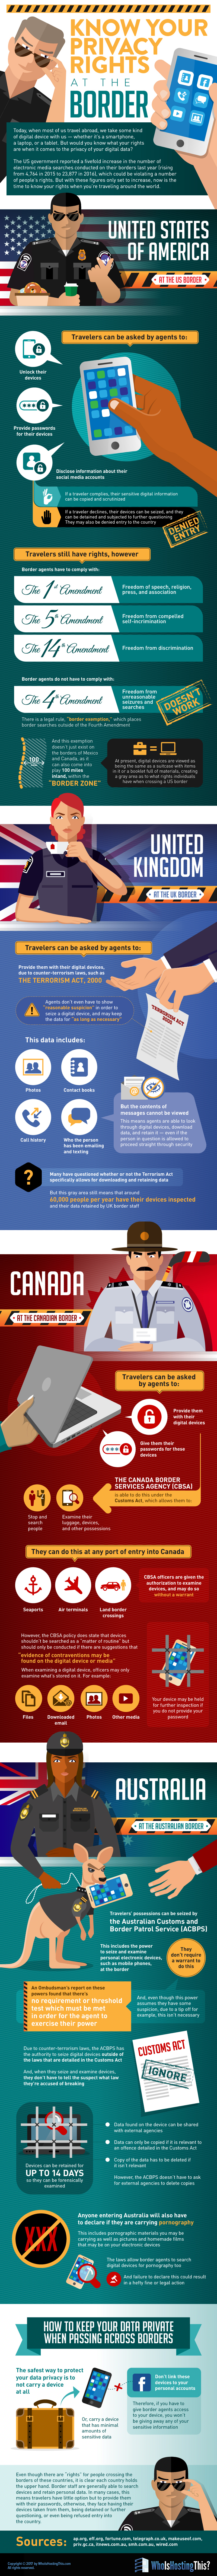 These Are Your Privacy Rights At The Border - Infographic